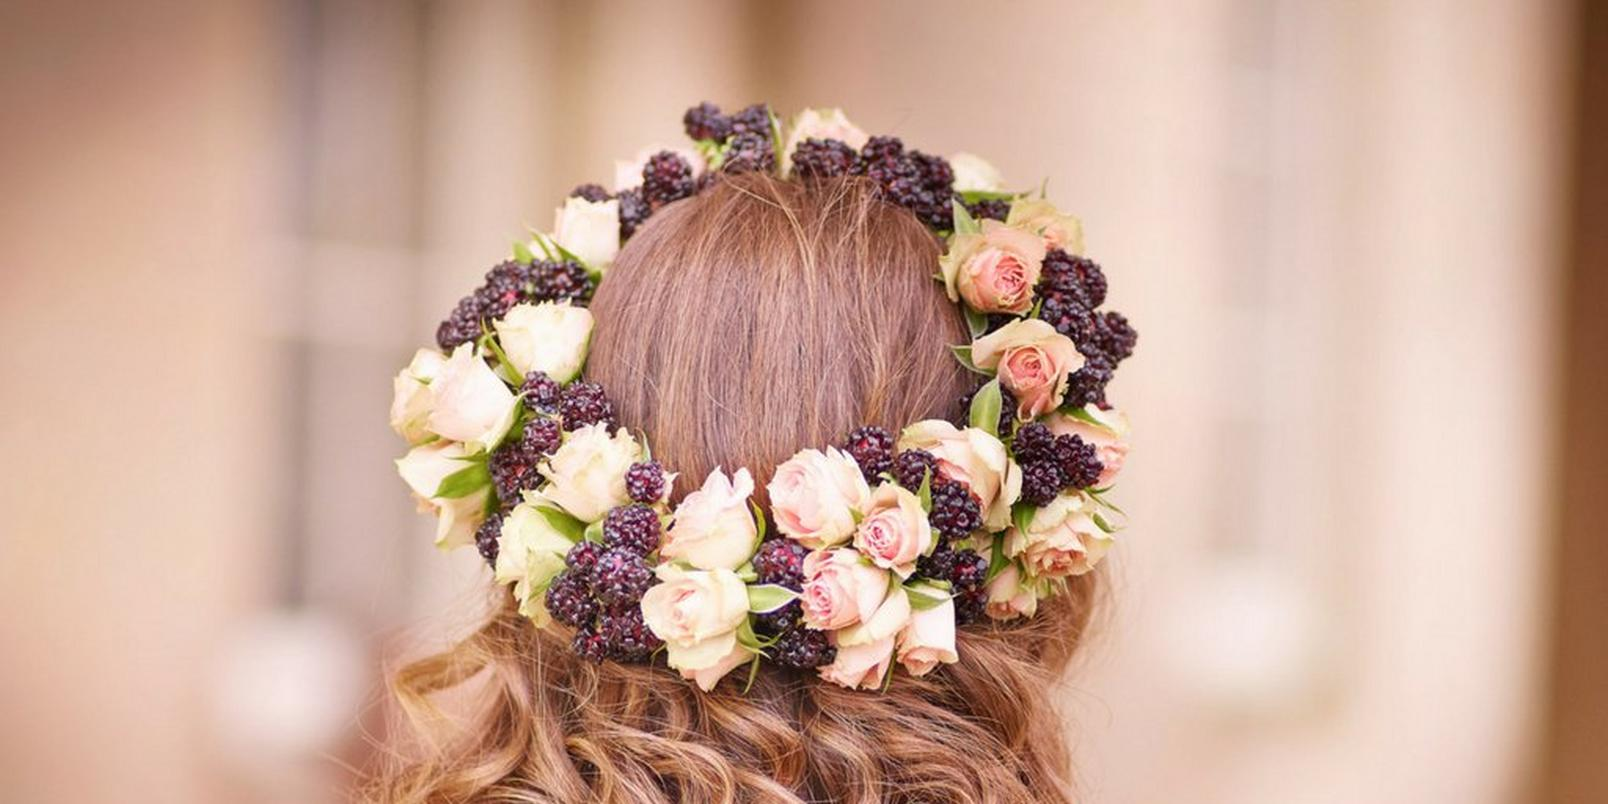 Untitled-design-11-1-flowers-in-hair